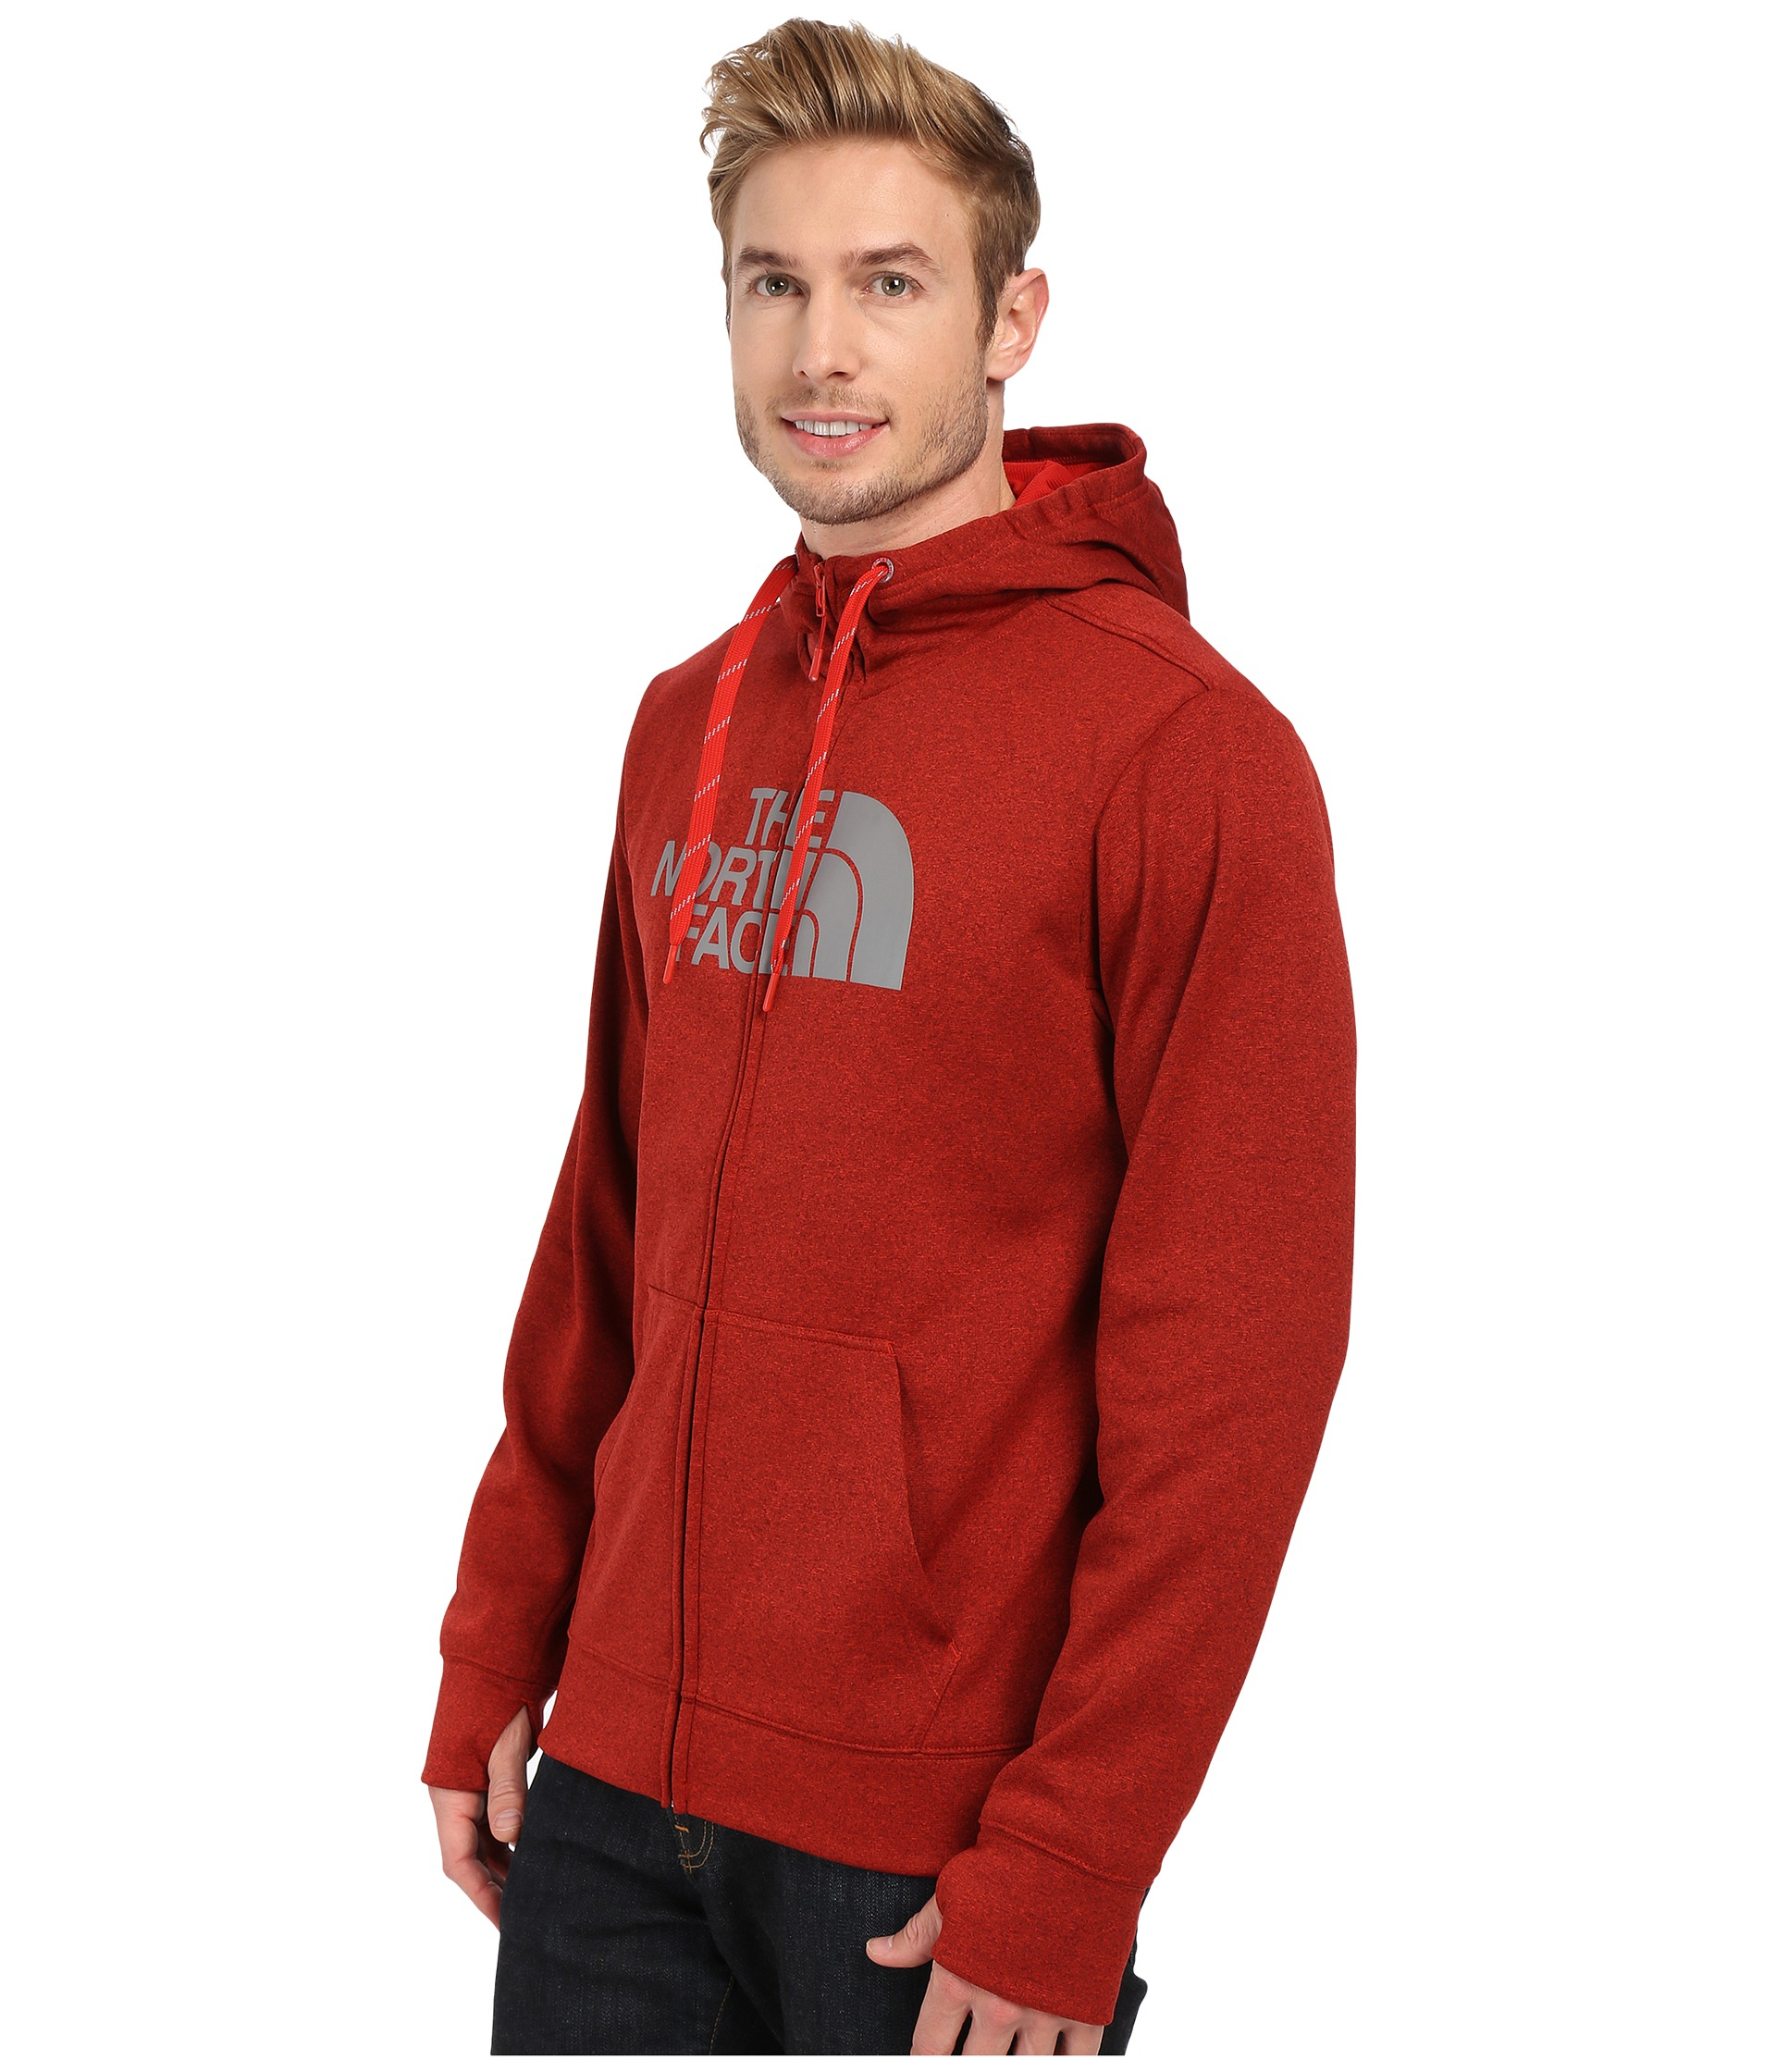 lyst the north face surgent half dome full zip hoodie in. Black Bedroom Furniture Sets. Home Design Ideas